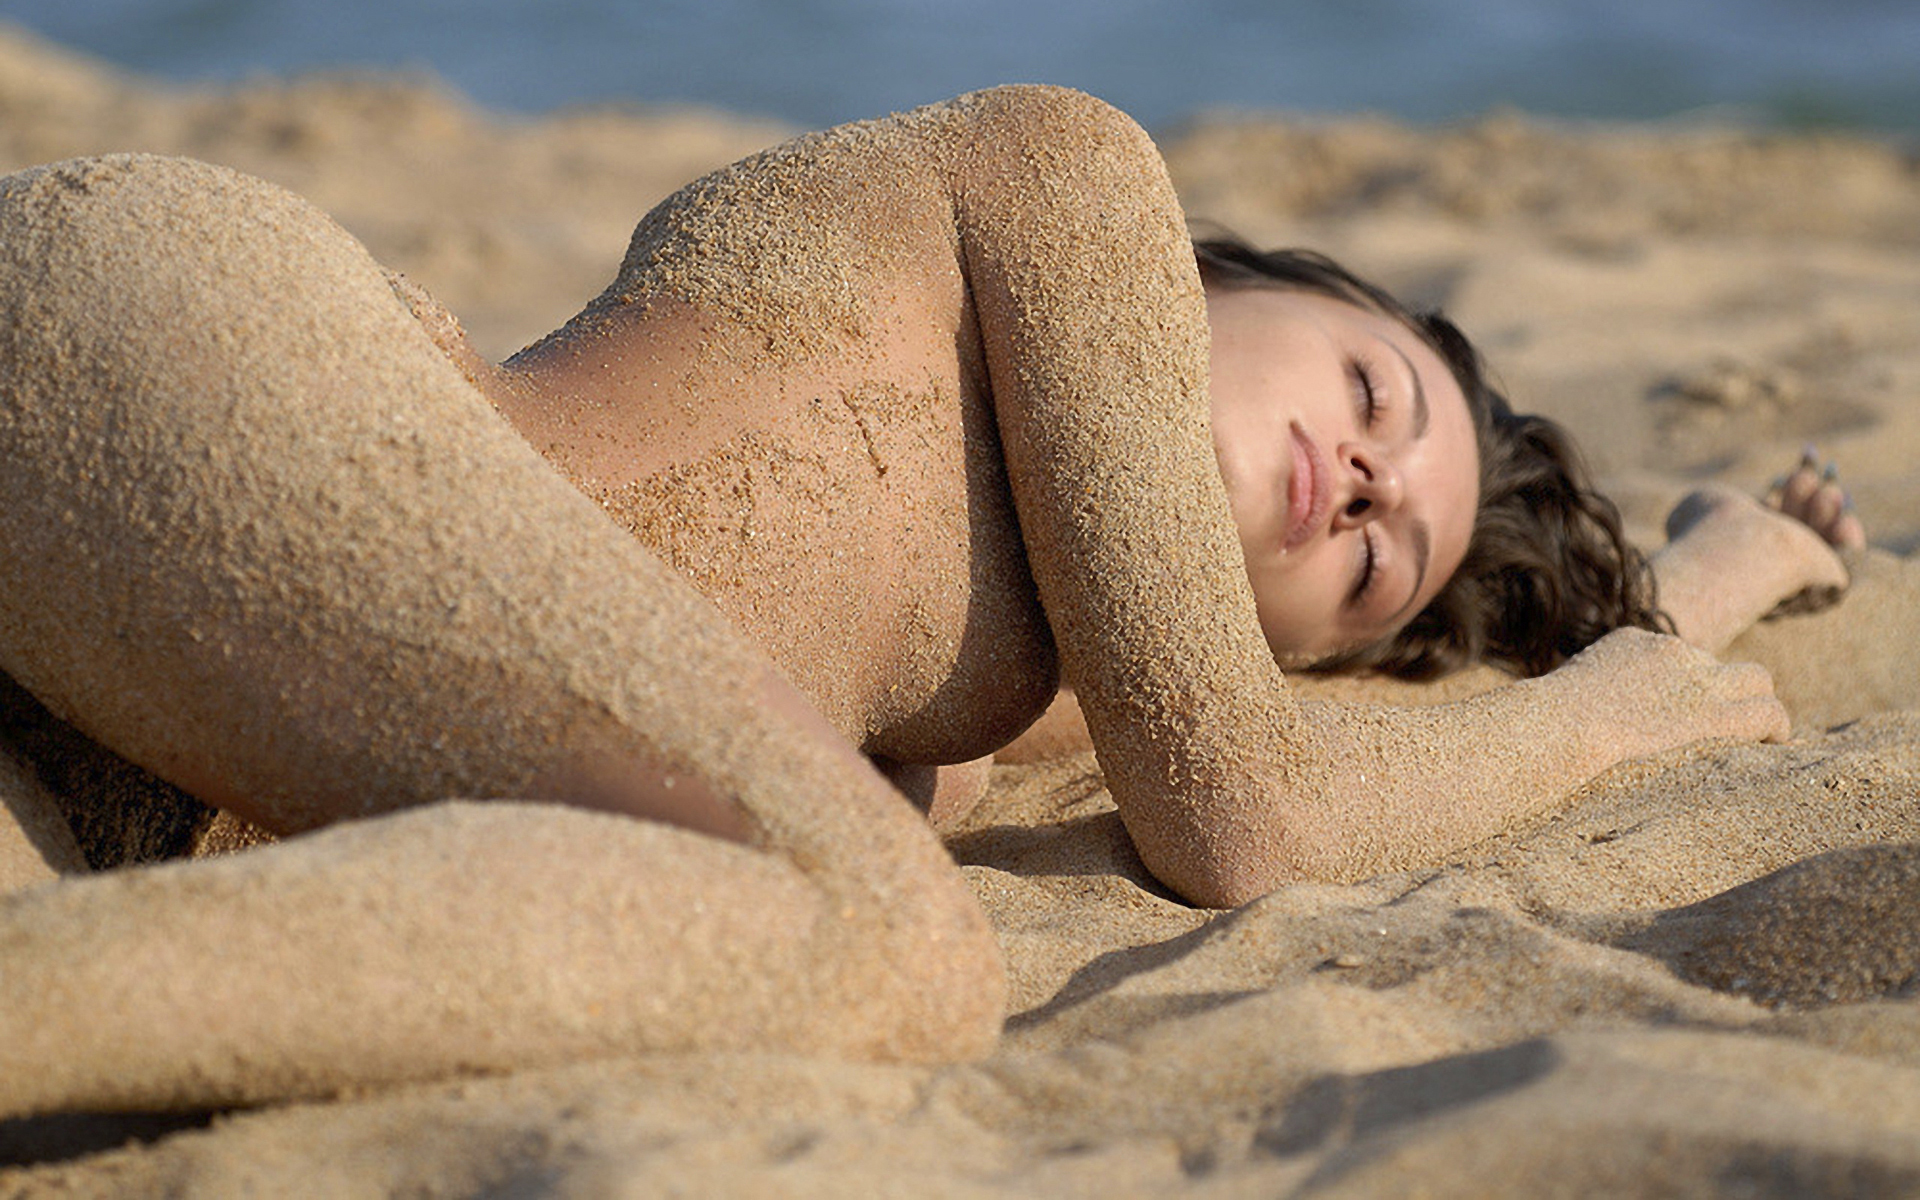 naked-girls-on-the-beach-sleeping-free-busty-centerfold-naughty-in-bed